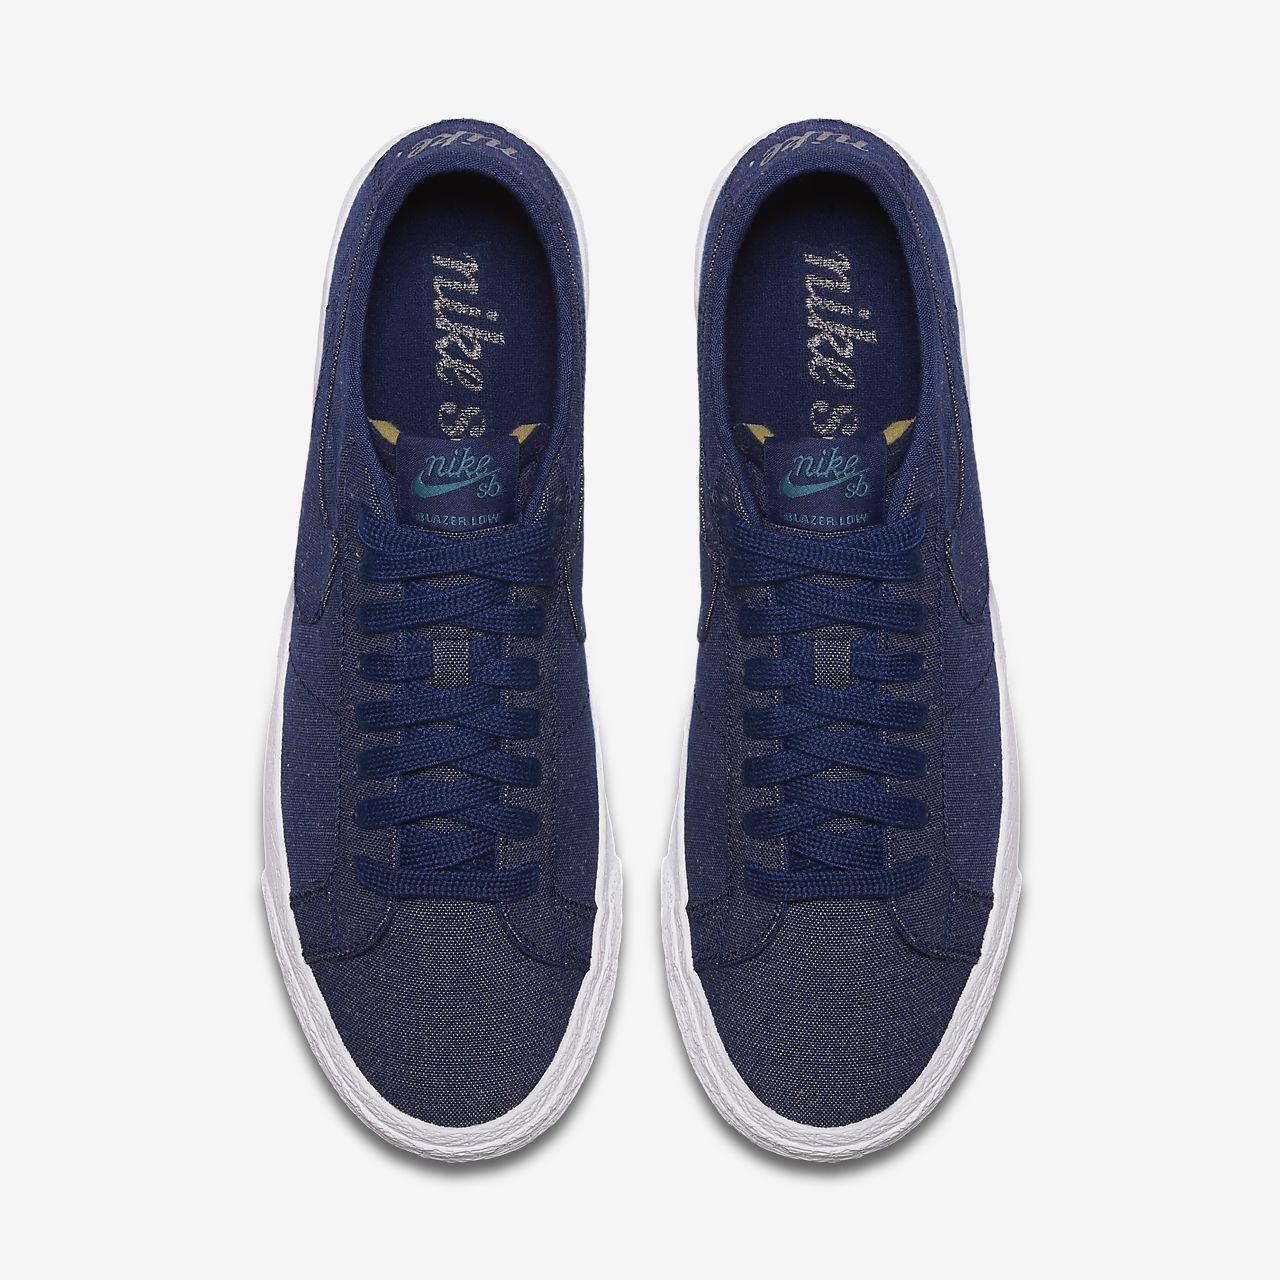 premium selection 53605 ce127 ... Chaussure de skateboard Nike SB Zoom Blazer Low Canvas Deconstructed  pour Homme